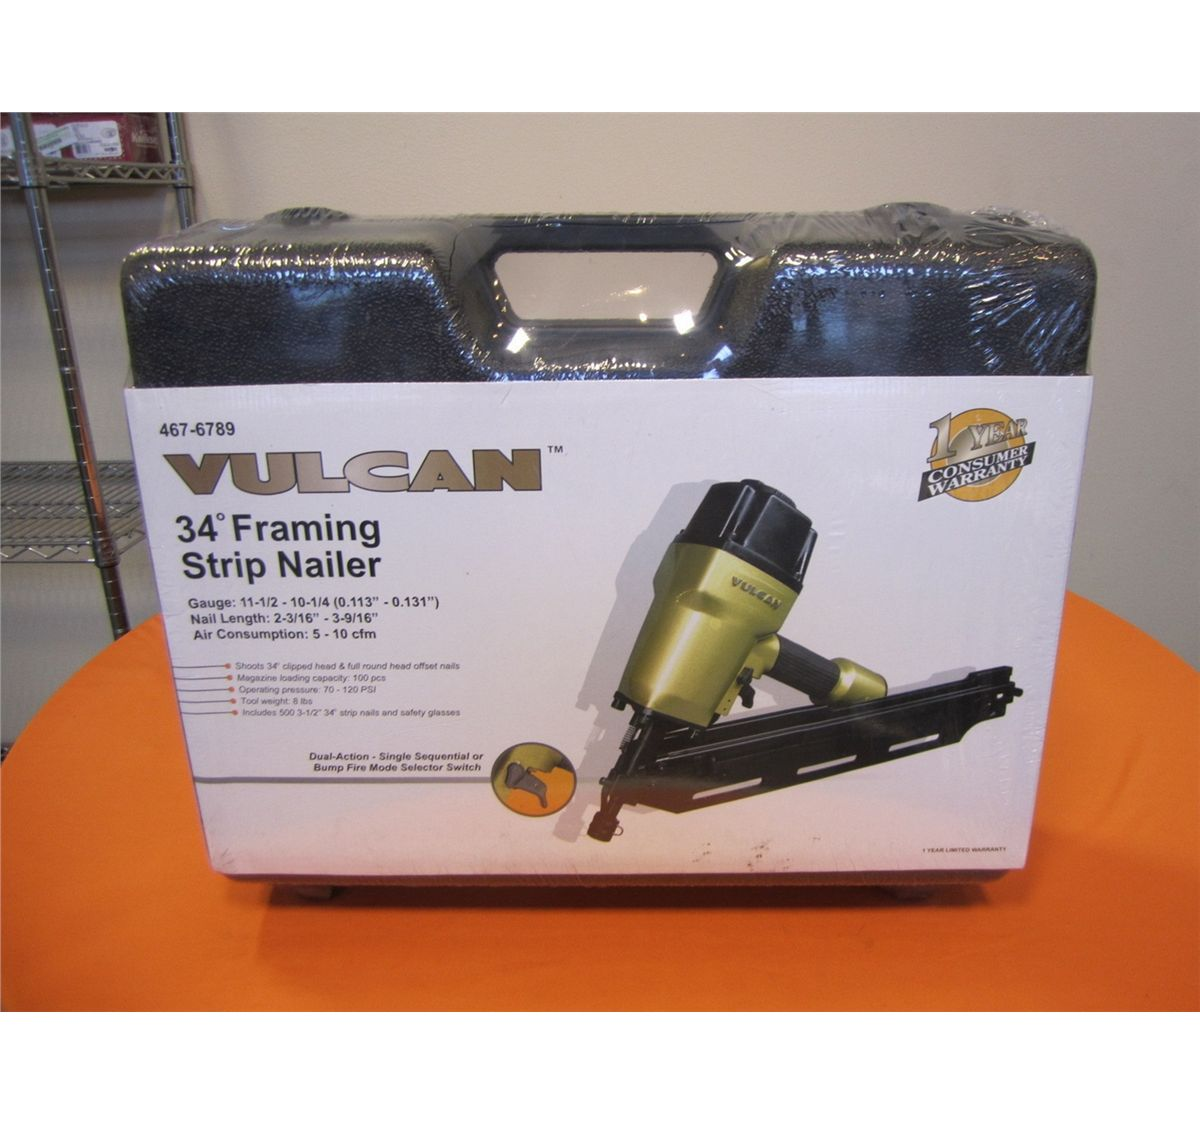 Vulcan ofn3490 framing strip nailer nail gun 34 deg new jeuxipadfo Images